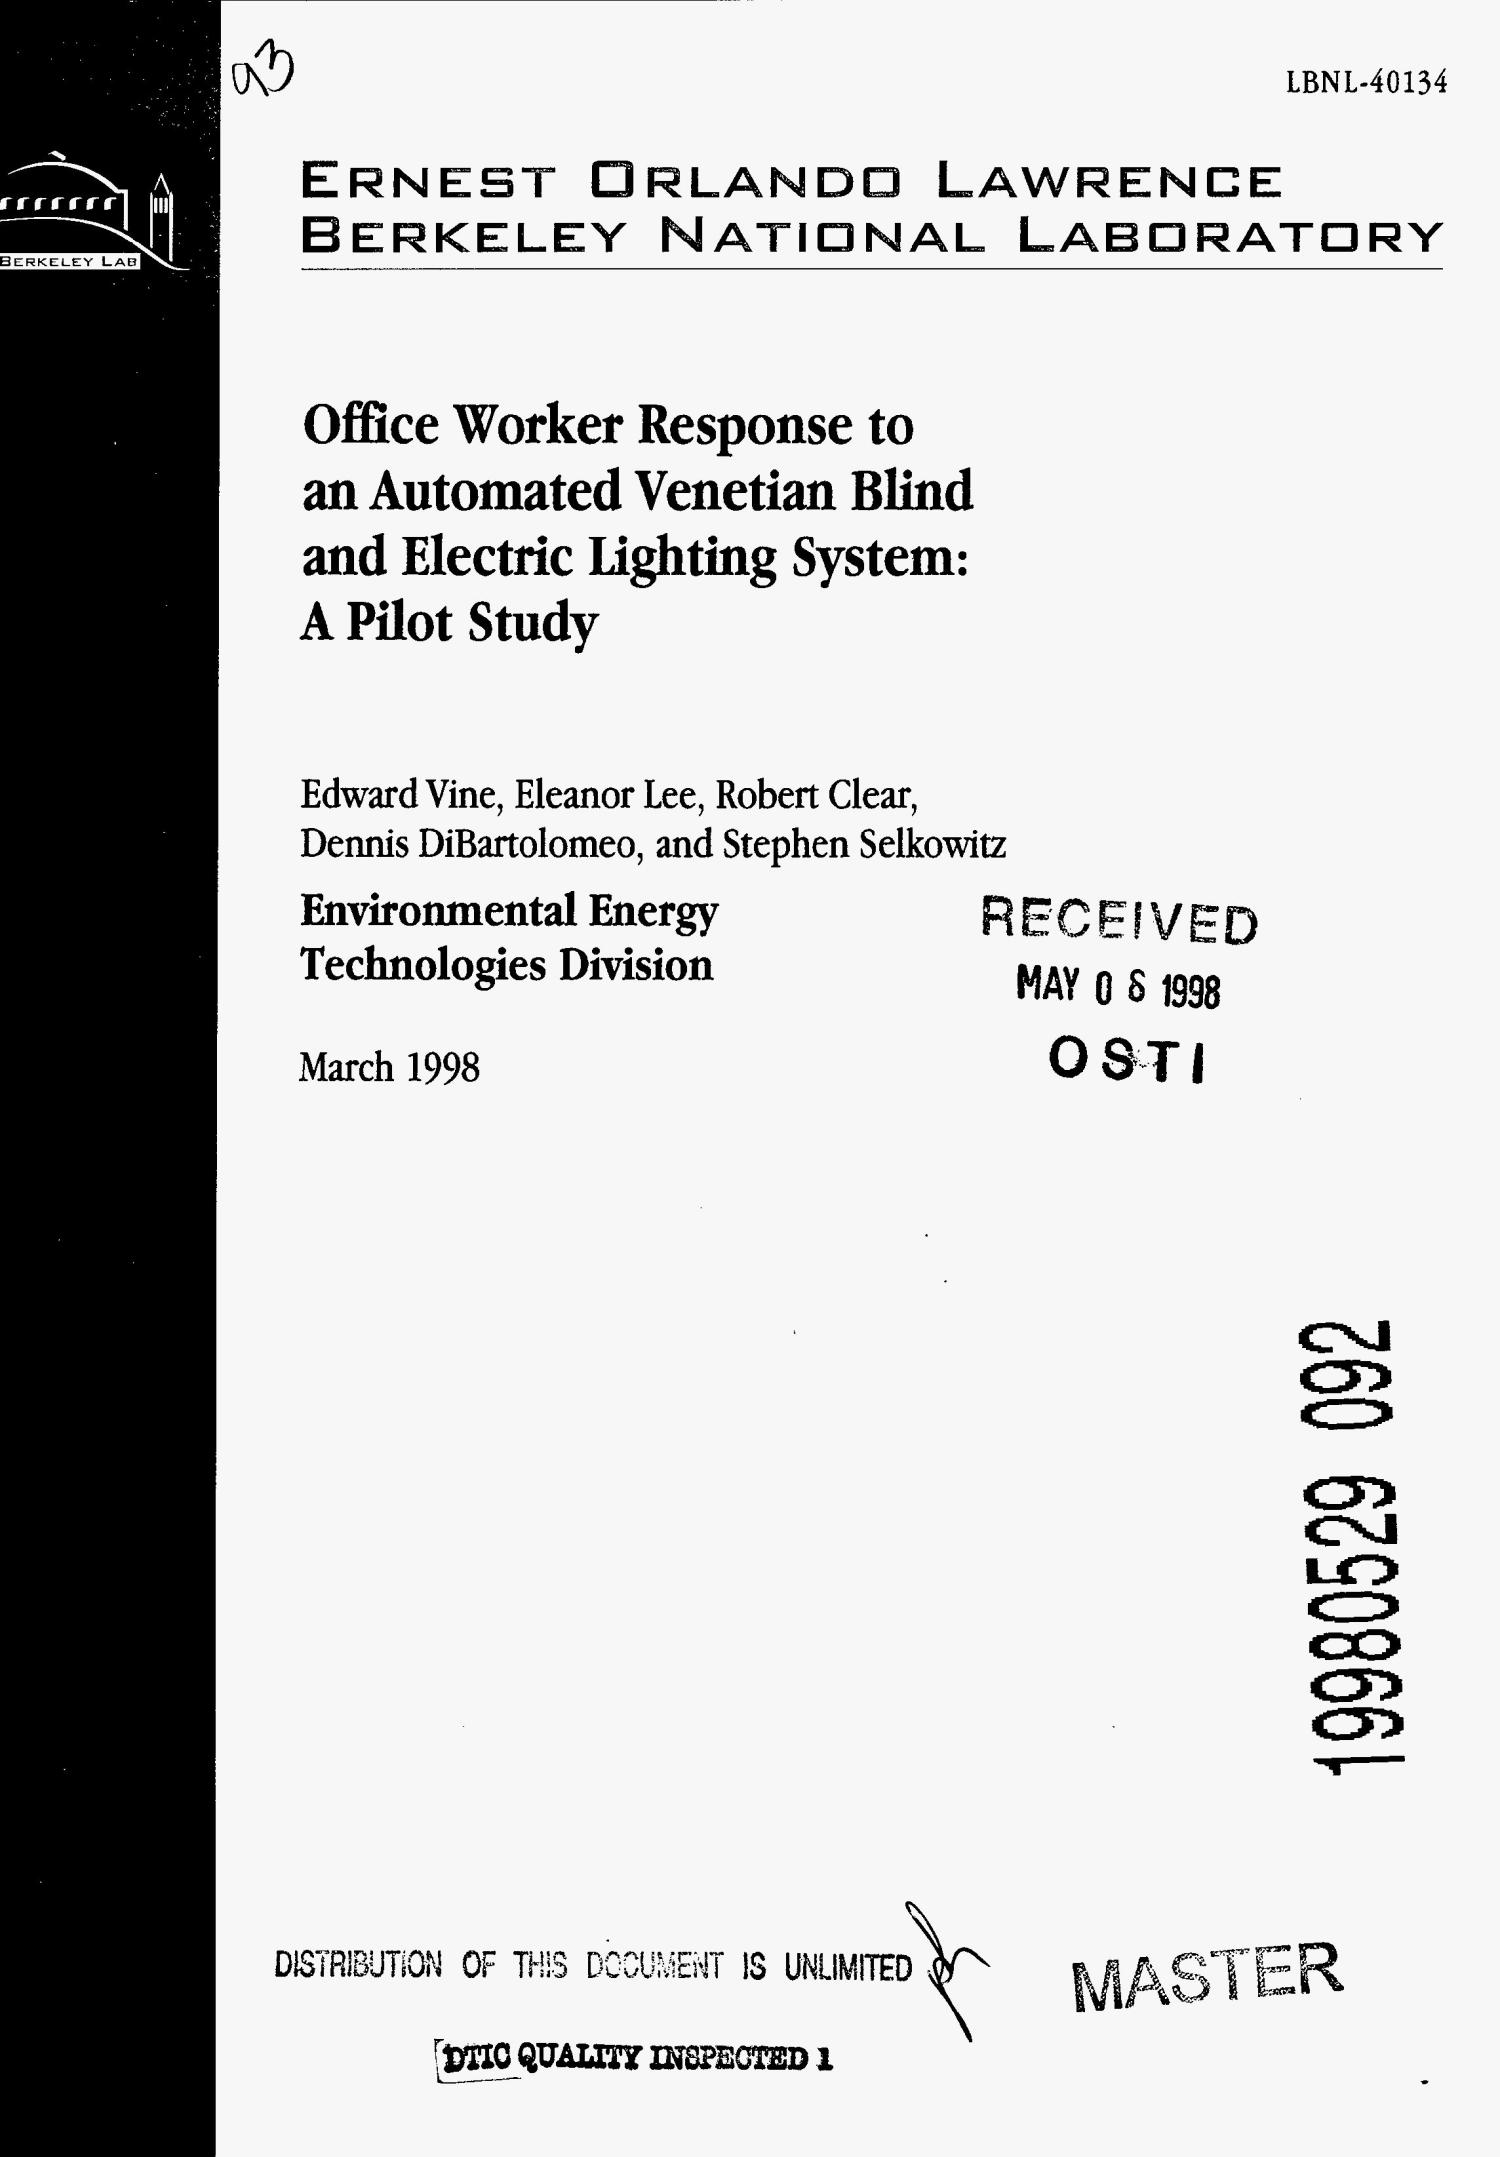 Office worker response to an automated venetian blind and electric lighting system: A pilot study                                                                                                      [Sequence #]: 1 of 32